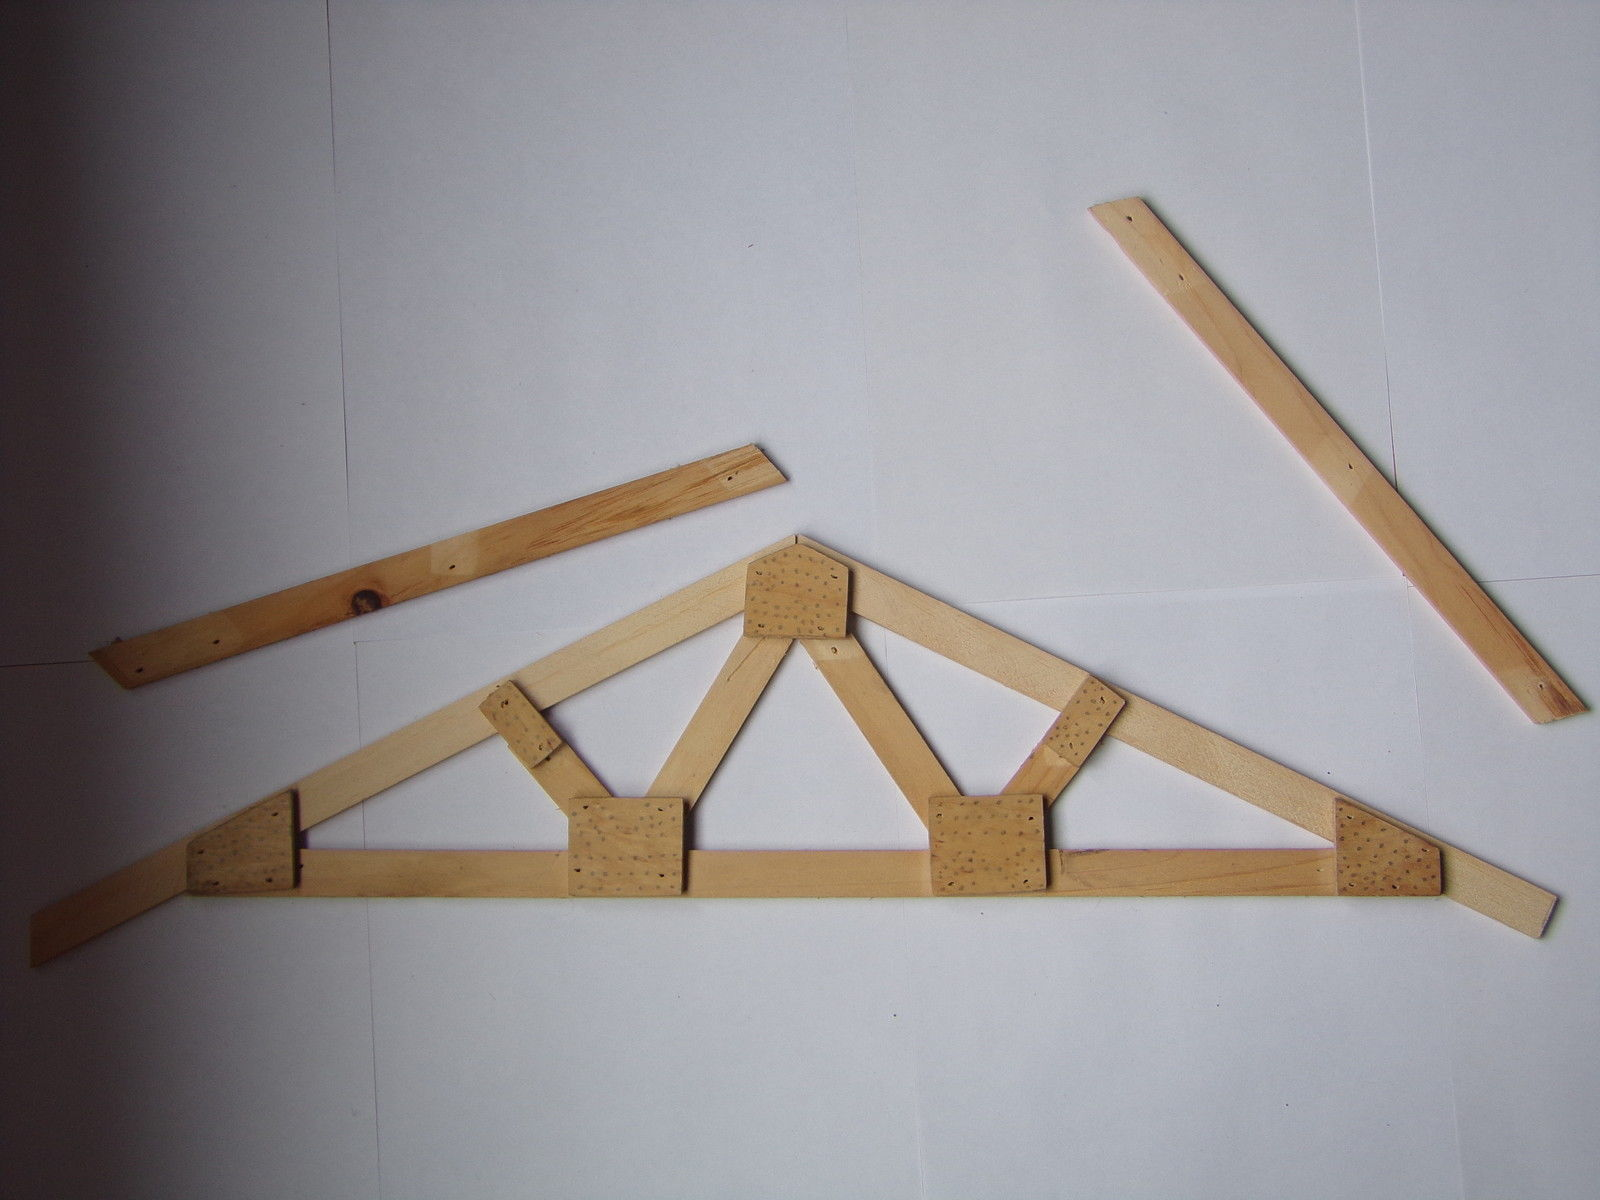 Roof Truss Plans How To Build Make Your Own and similar items